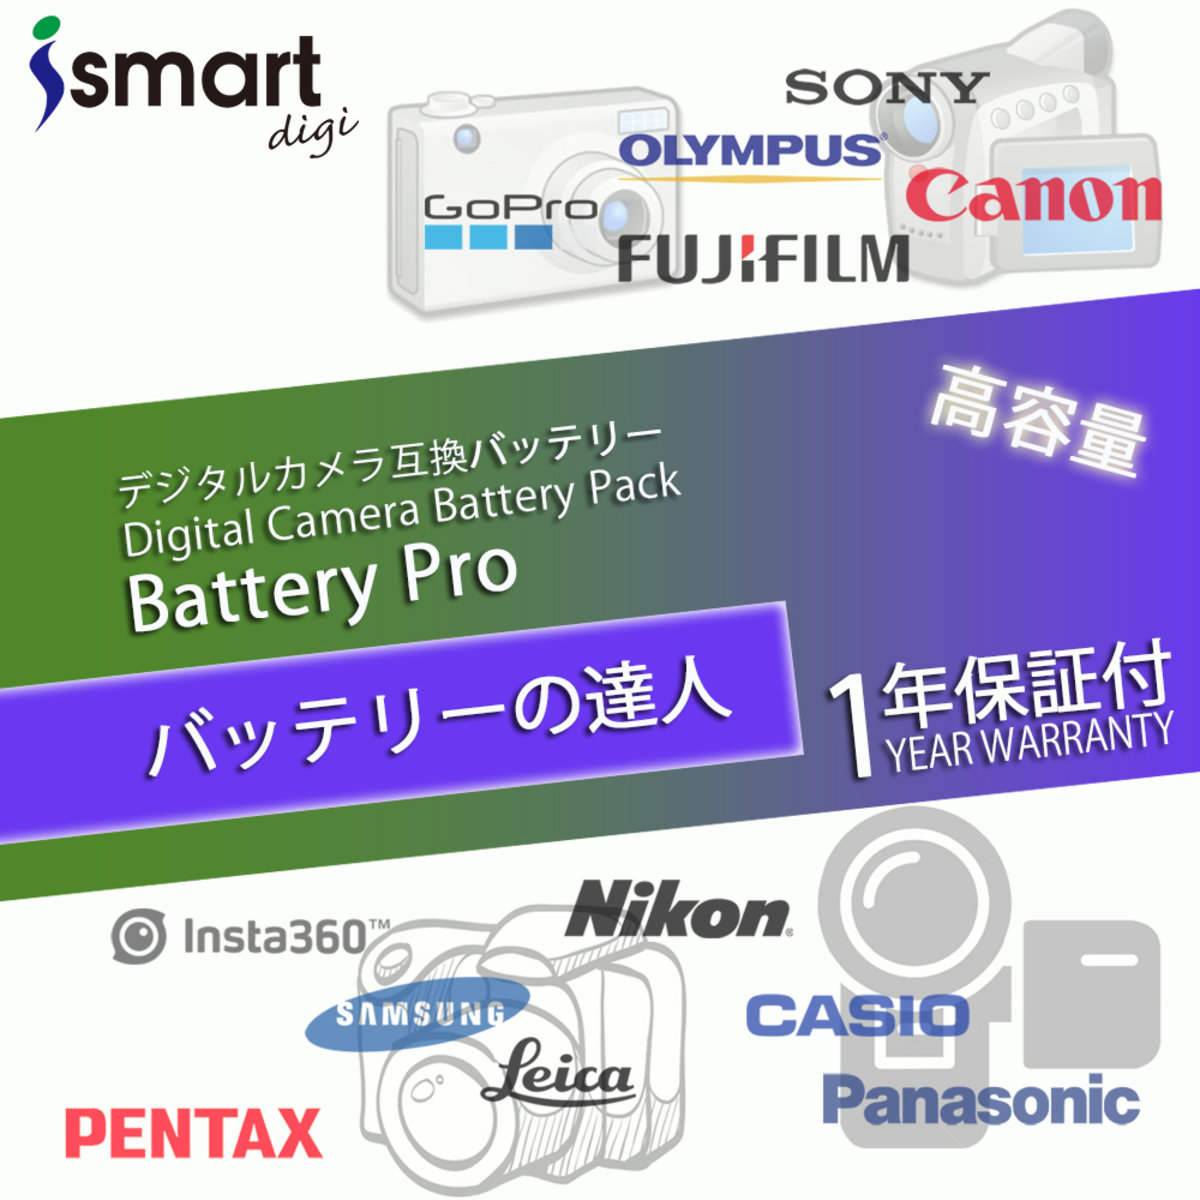 Nikon Digital Camera Battery (For:Coolpix S6200,S9900,AW110,P330,P300,P310,S6300,S9300,Coolpix P340)